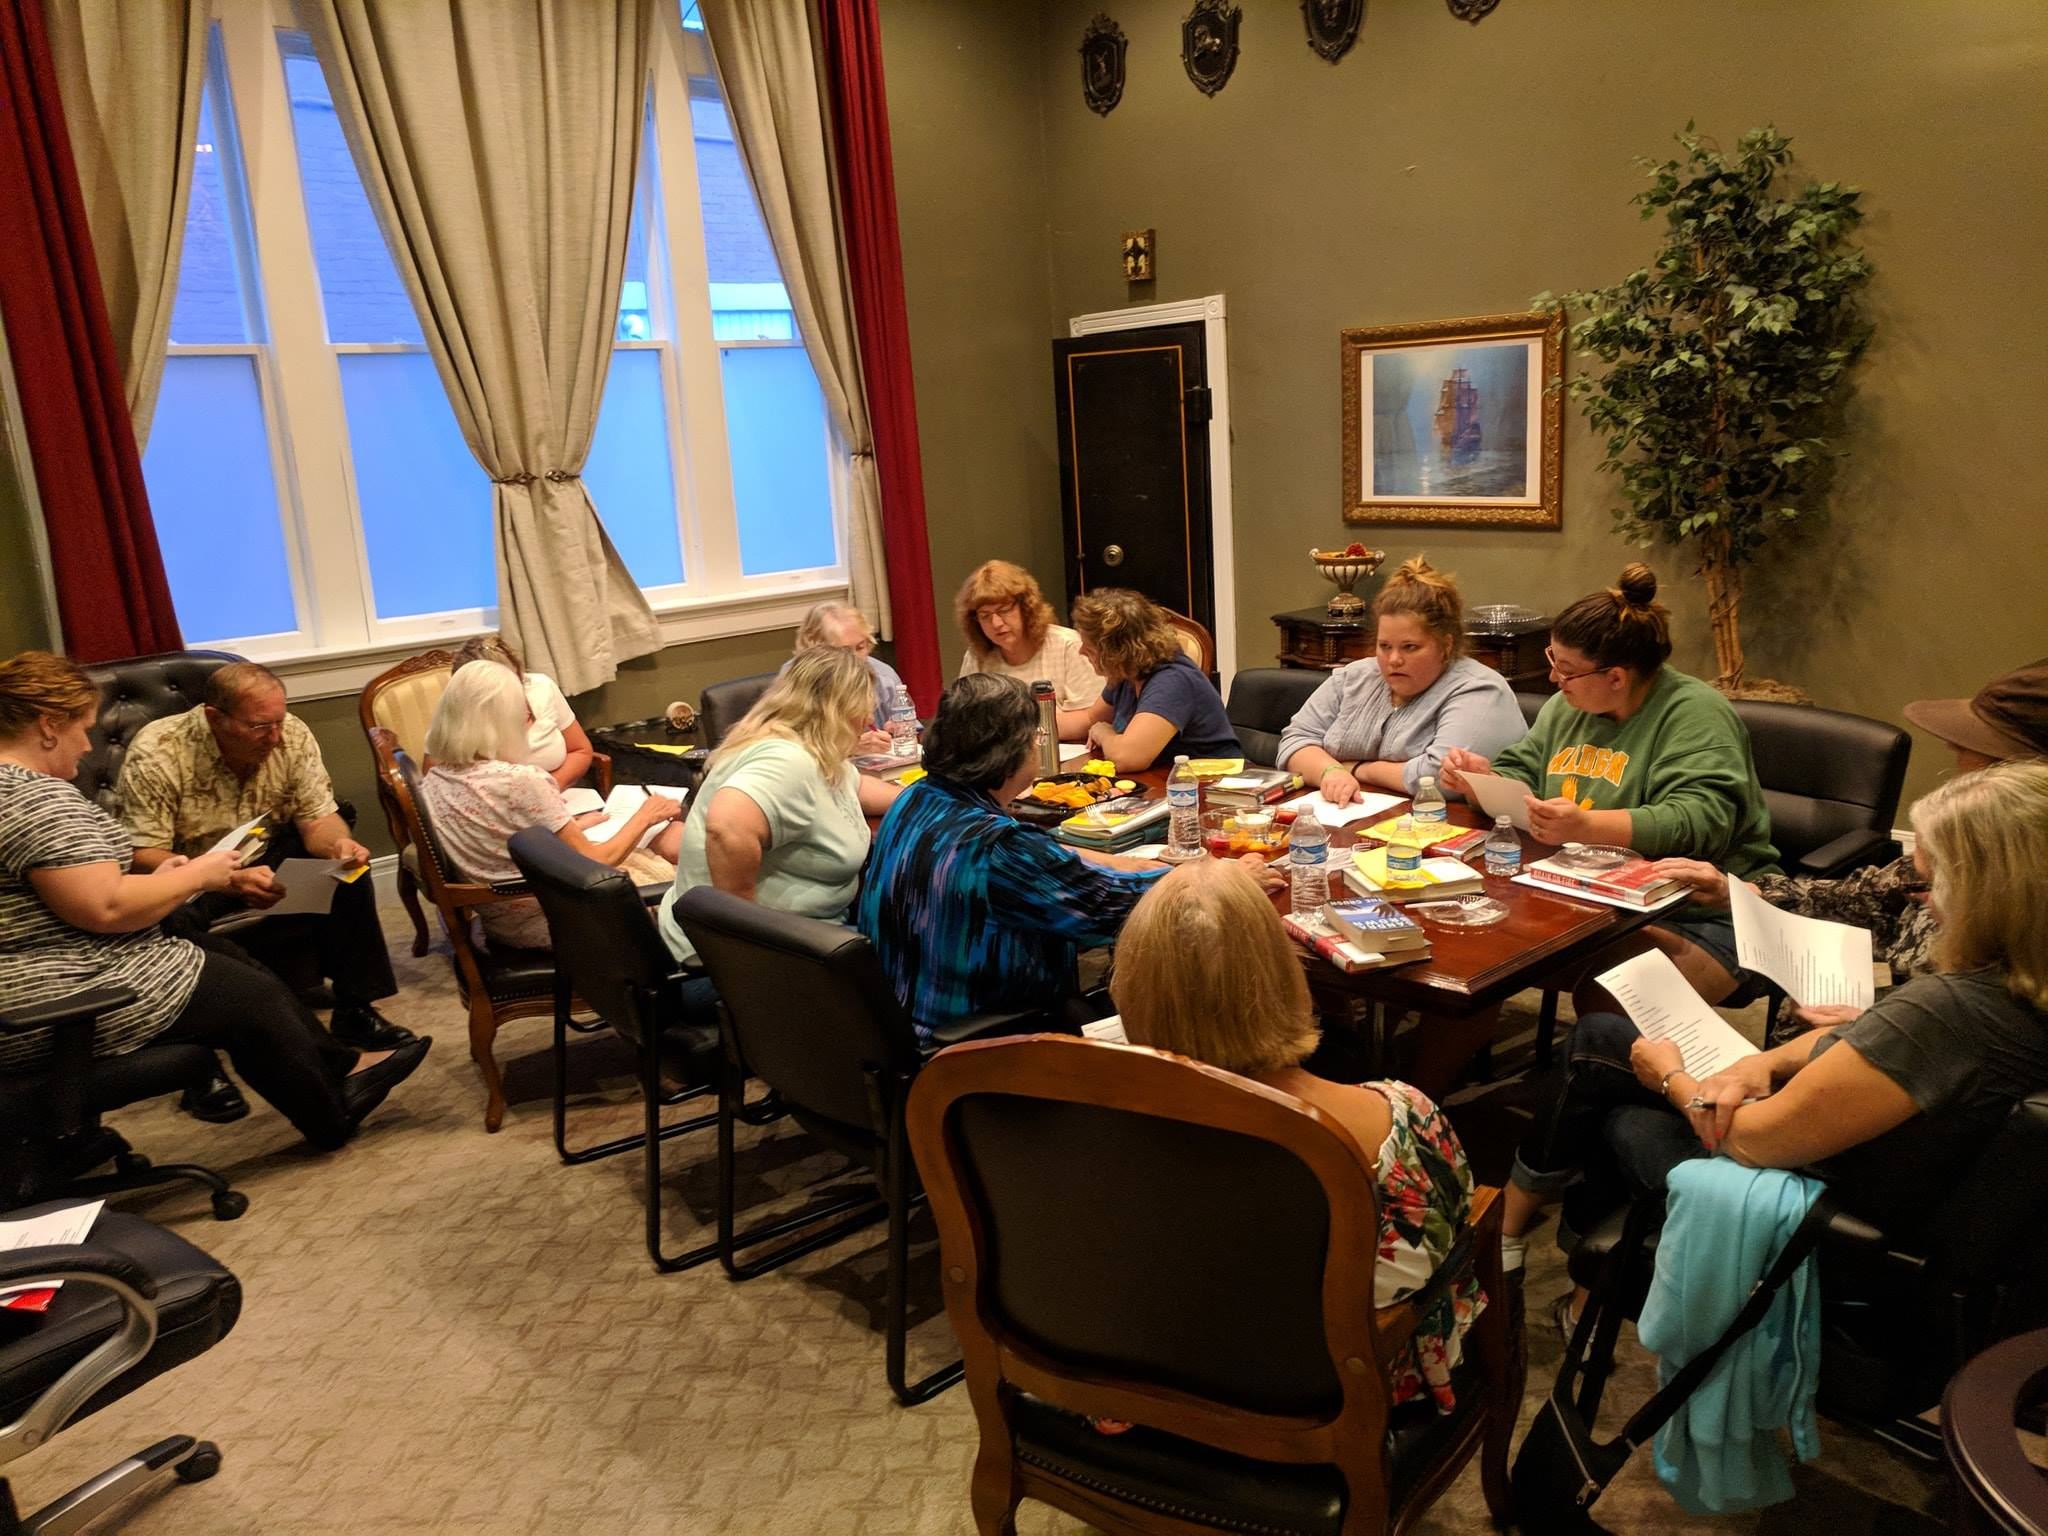 16 people were in attendance for the July 'Around Town' Book Club meeting.